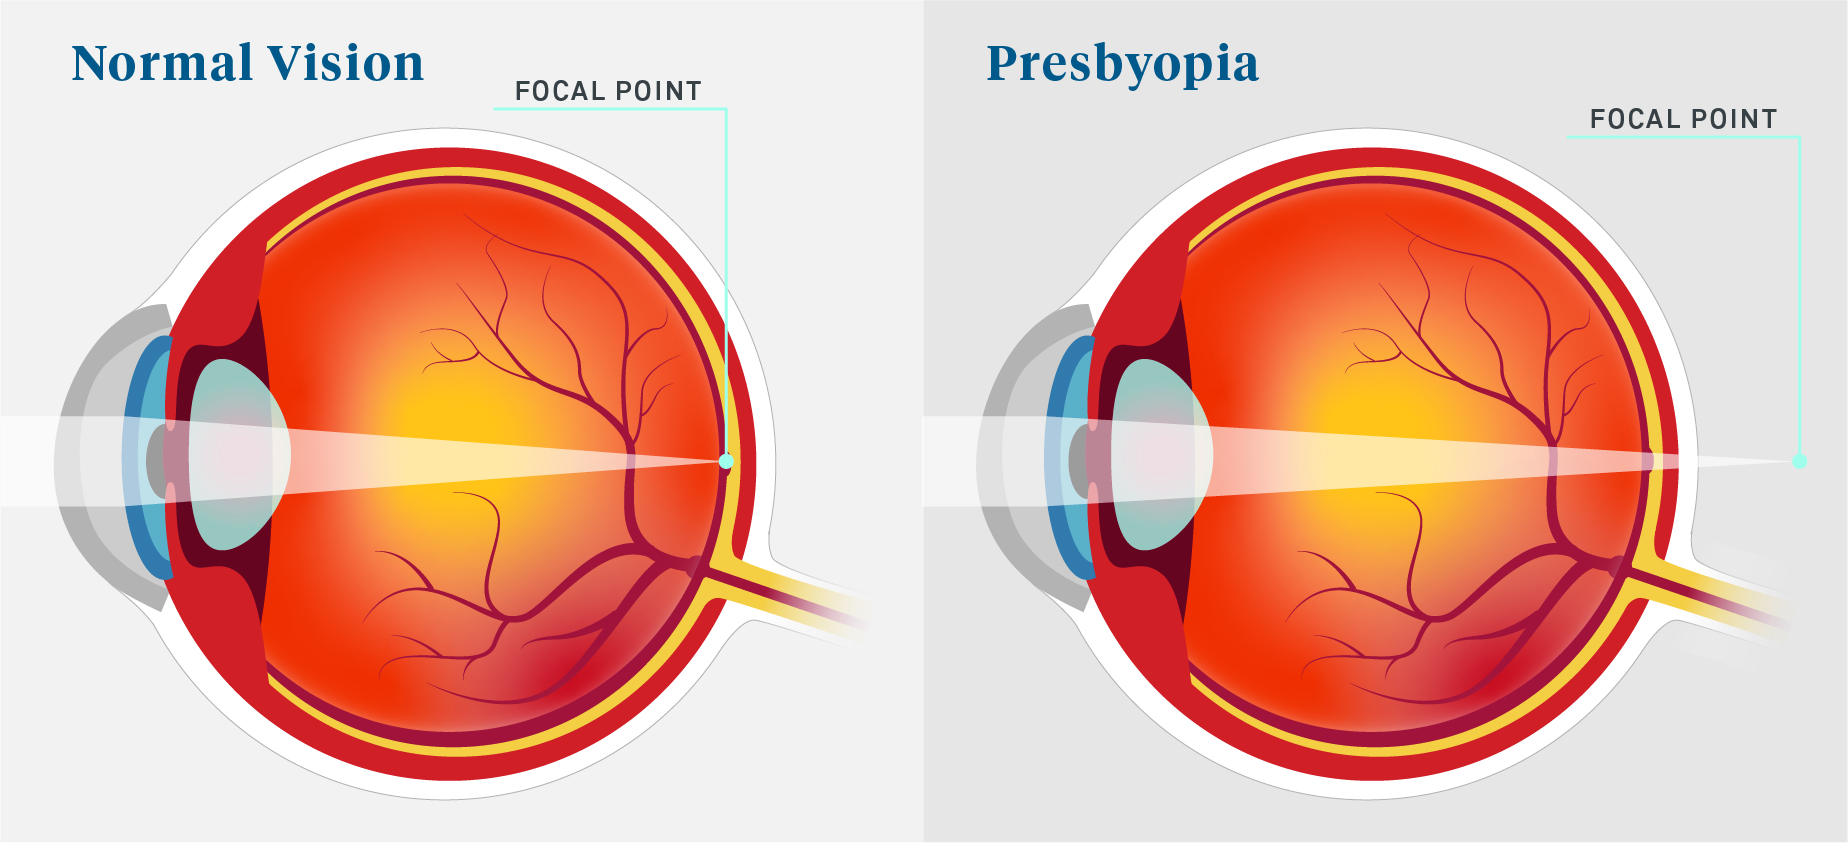 Normal Vision vs. Presbyopia